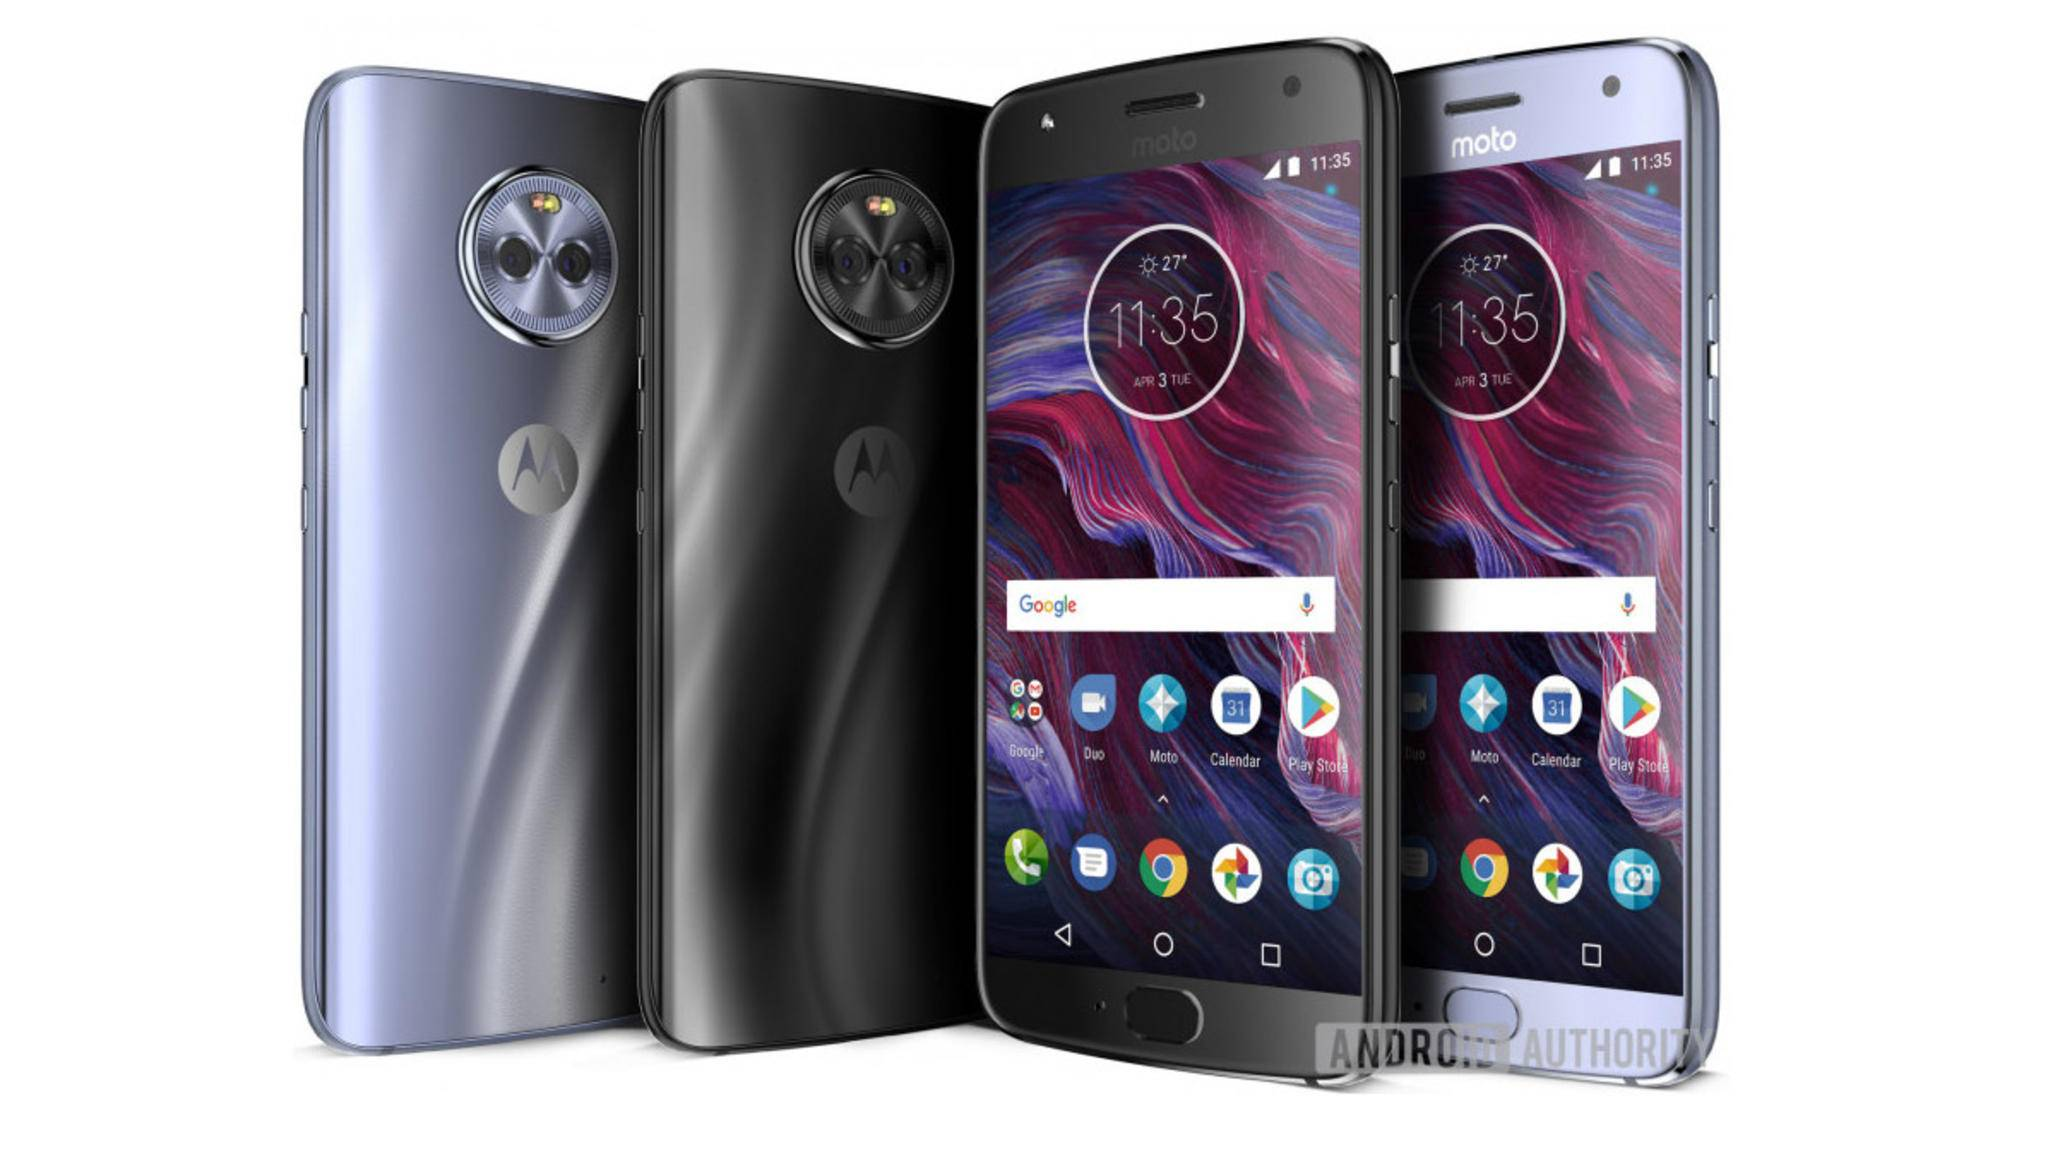 Die Bluetooth-Features des Moto X4 sind revolutionär.